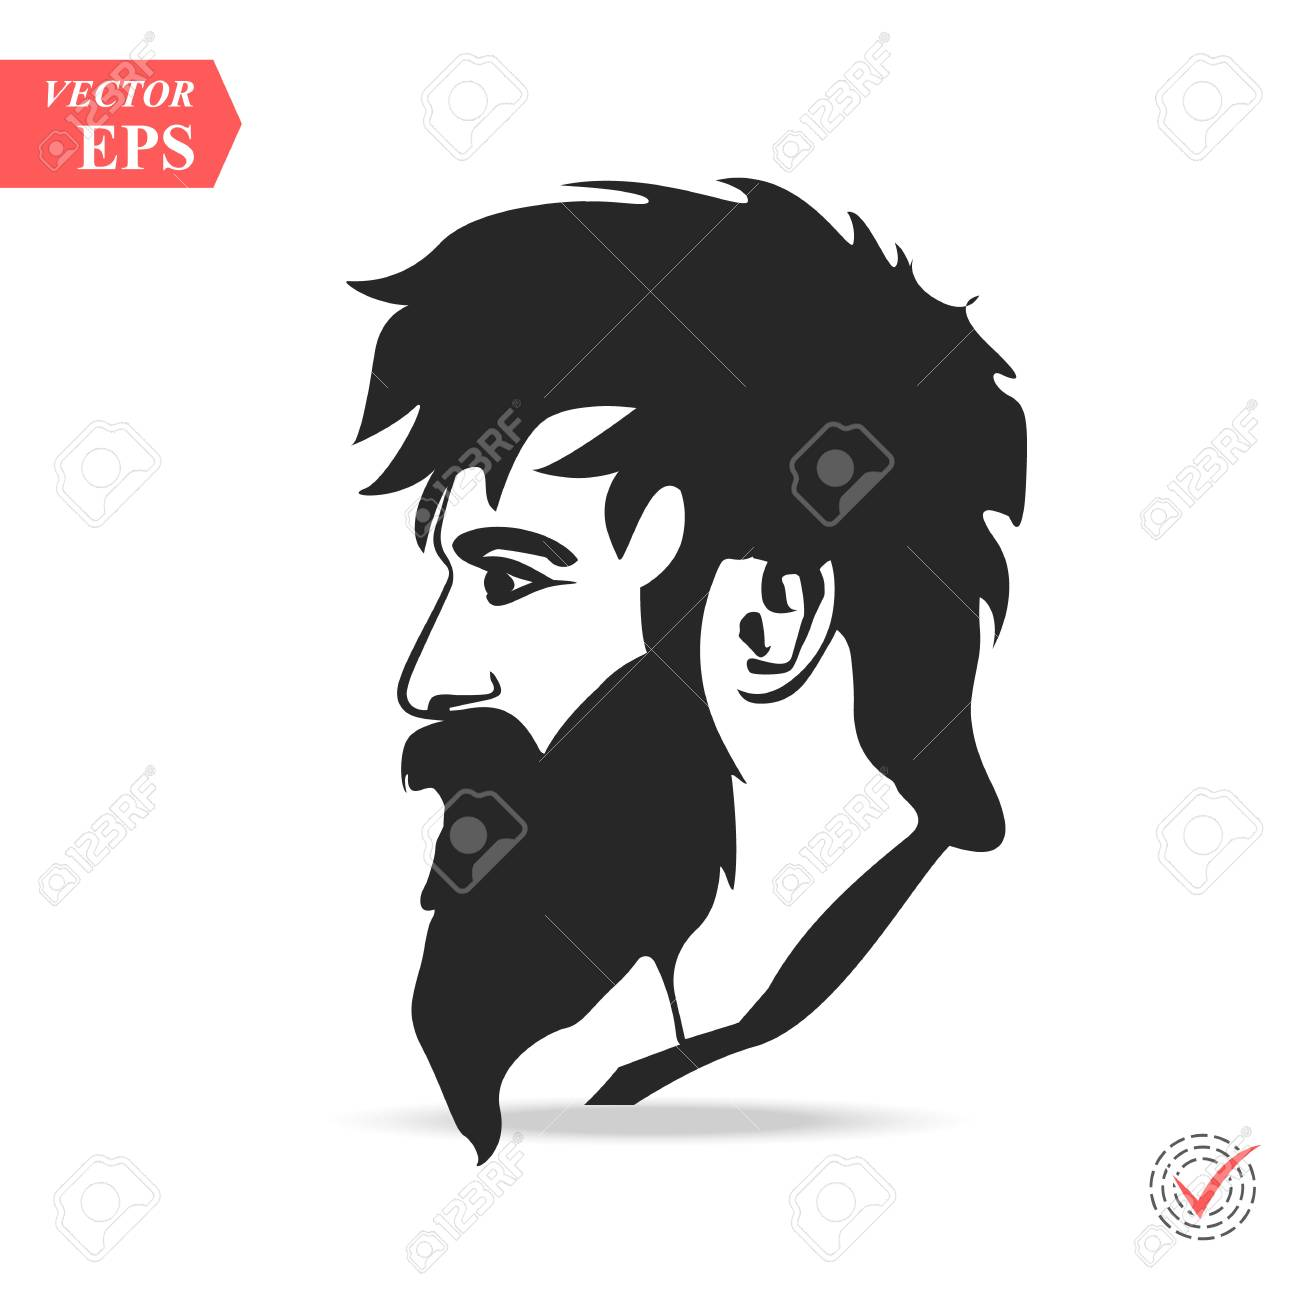 9e35e944462 Man with beard variations silhouette fashion silhouette hipster style eps stock  vector jpg 1300x1300 Man silhouette